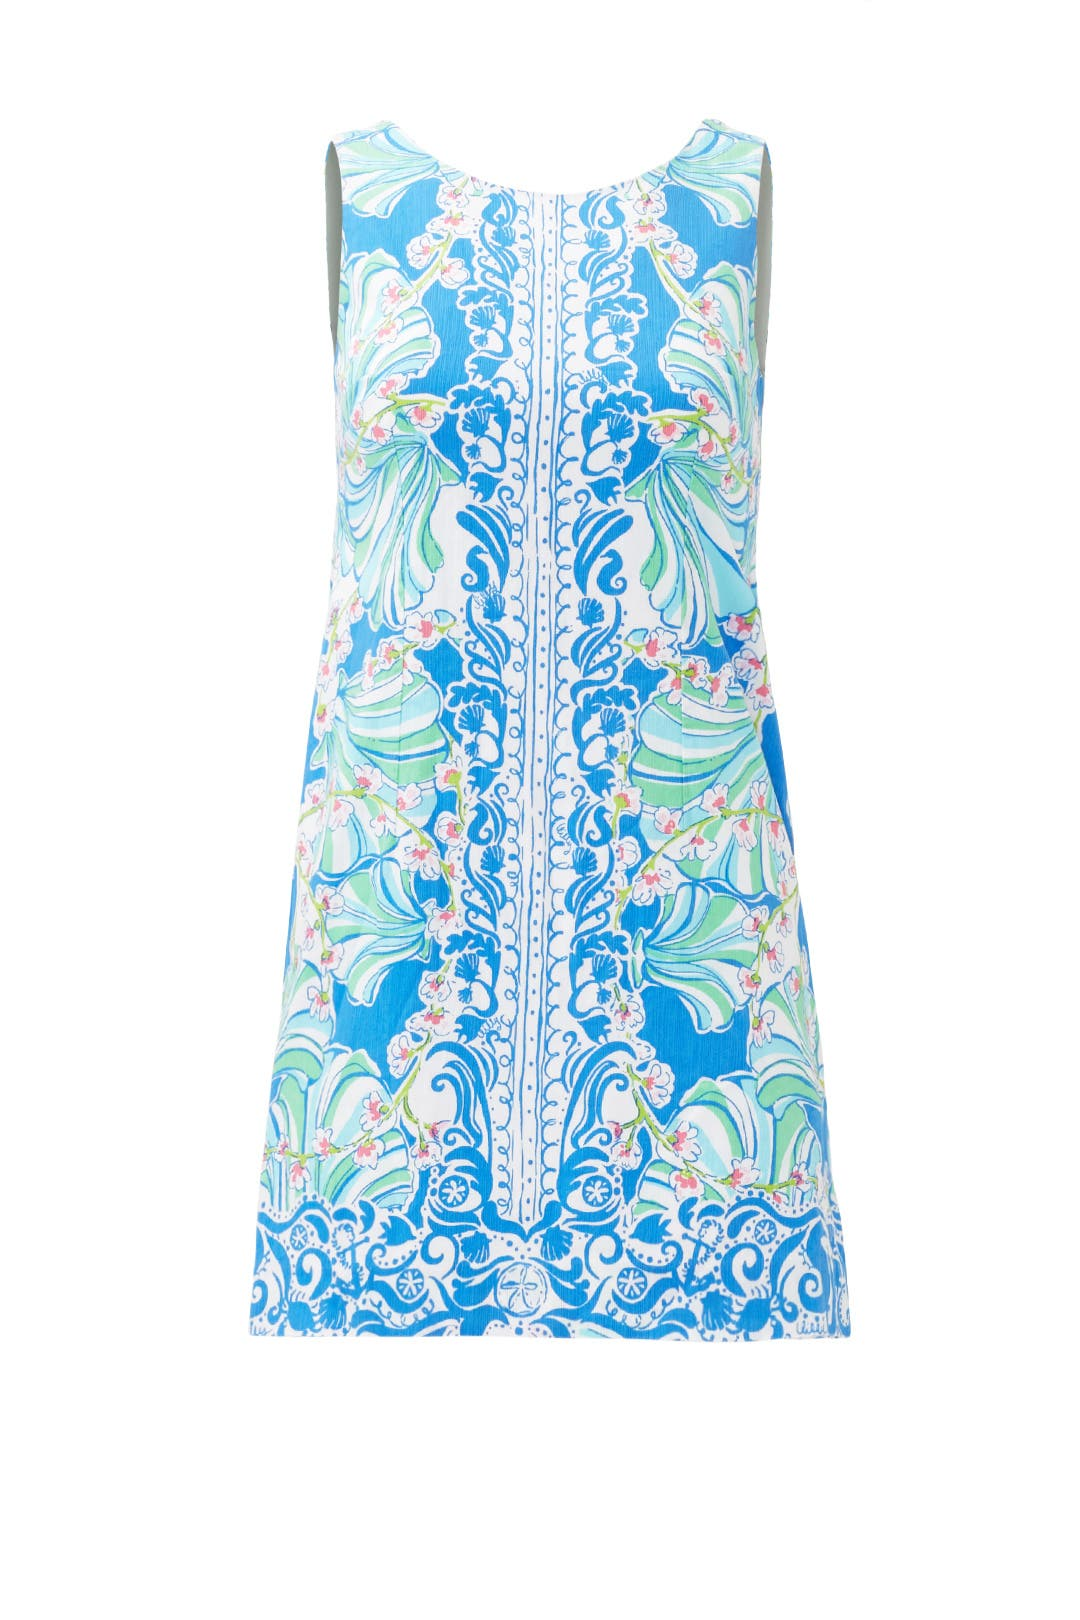 Blue Shell Shift by Lilly Pulitzer for $40 - $55 | Rent the Runway